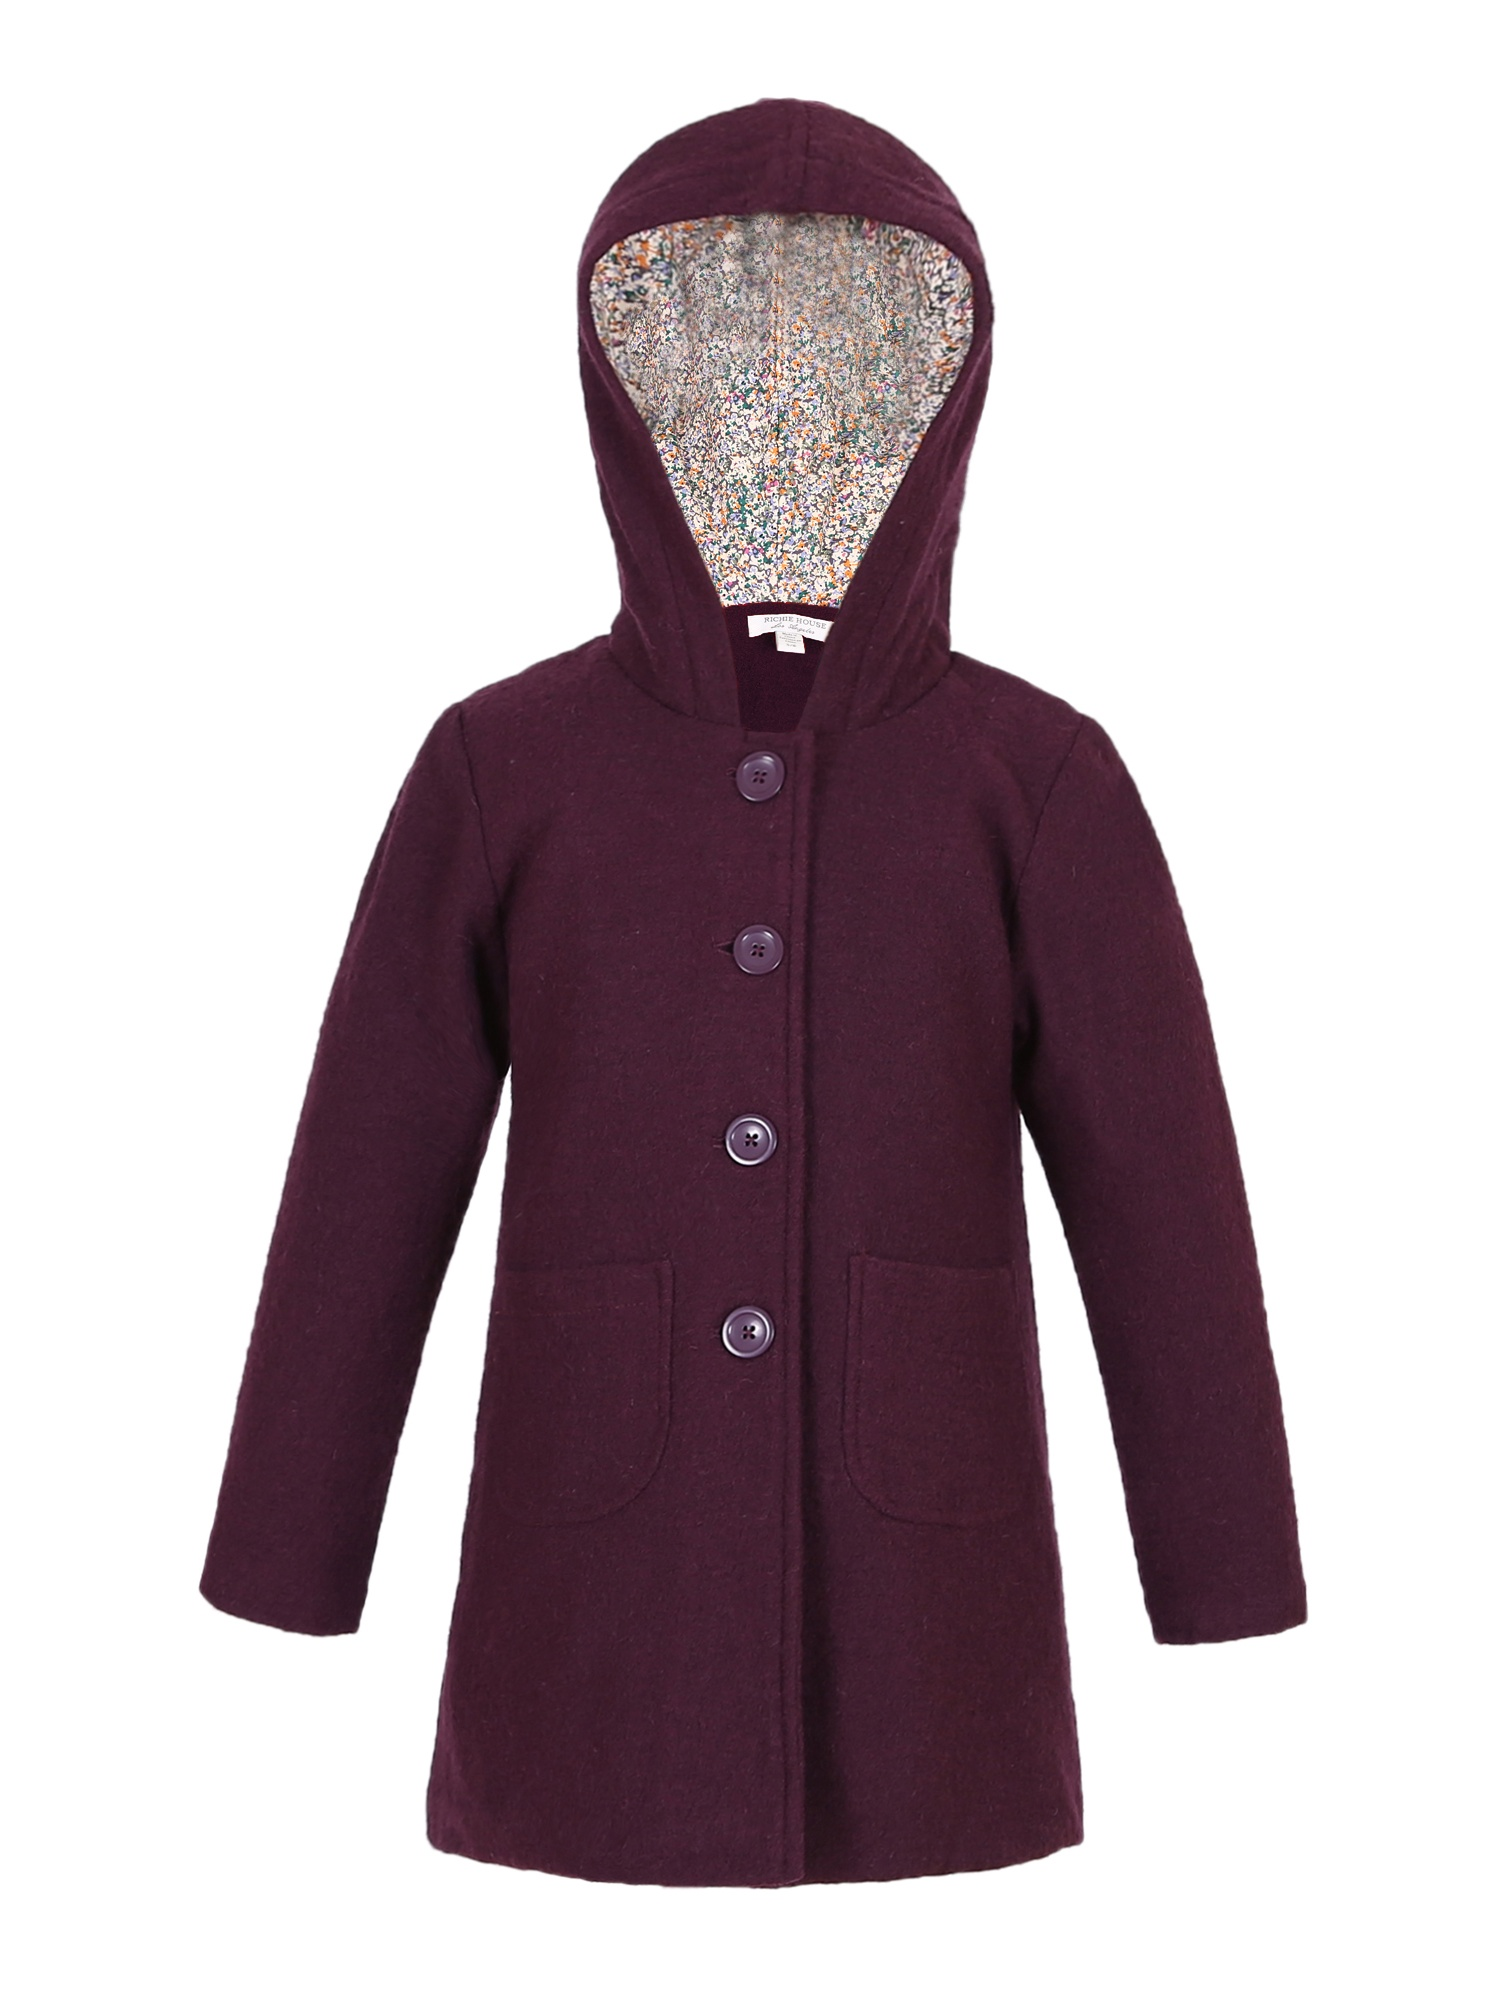 Richie House Girls' Double-breasted Wool Jacket with Hood RH2231